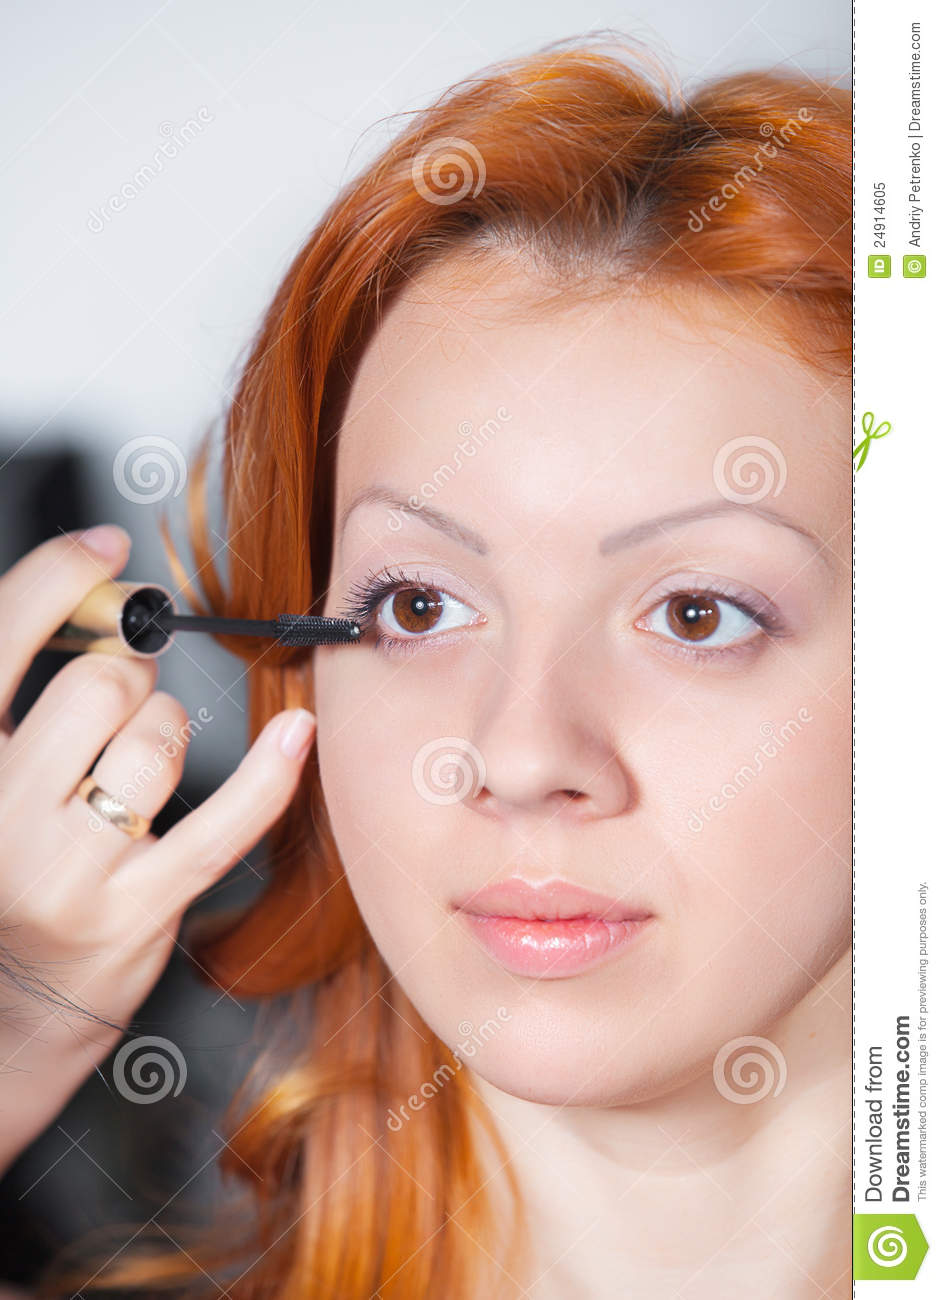 Young woman in beauty salon royalty free stock photo for Salon younga